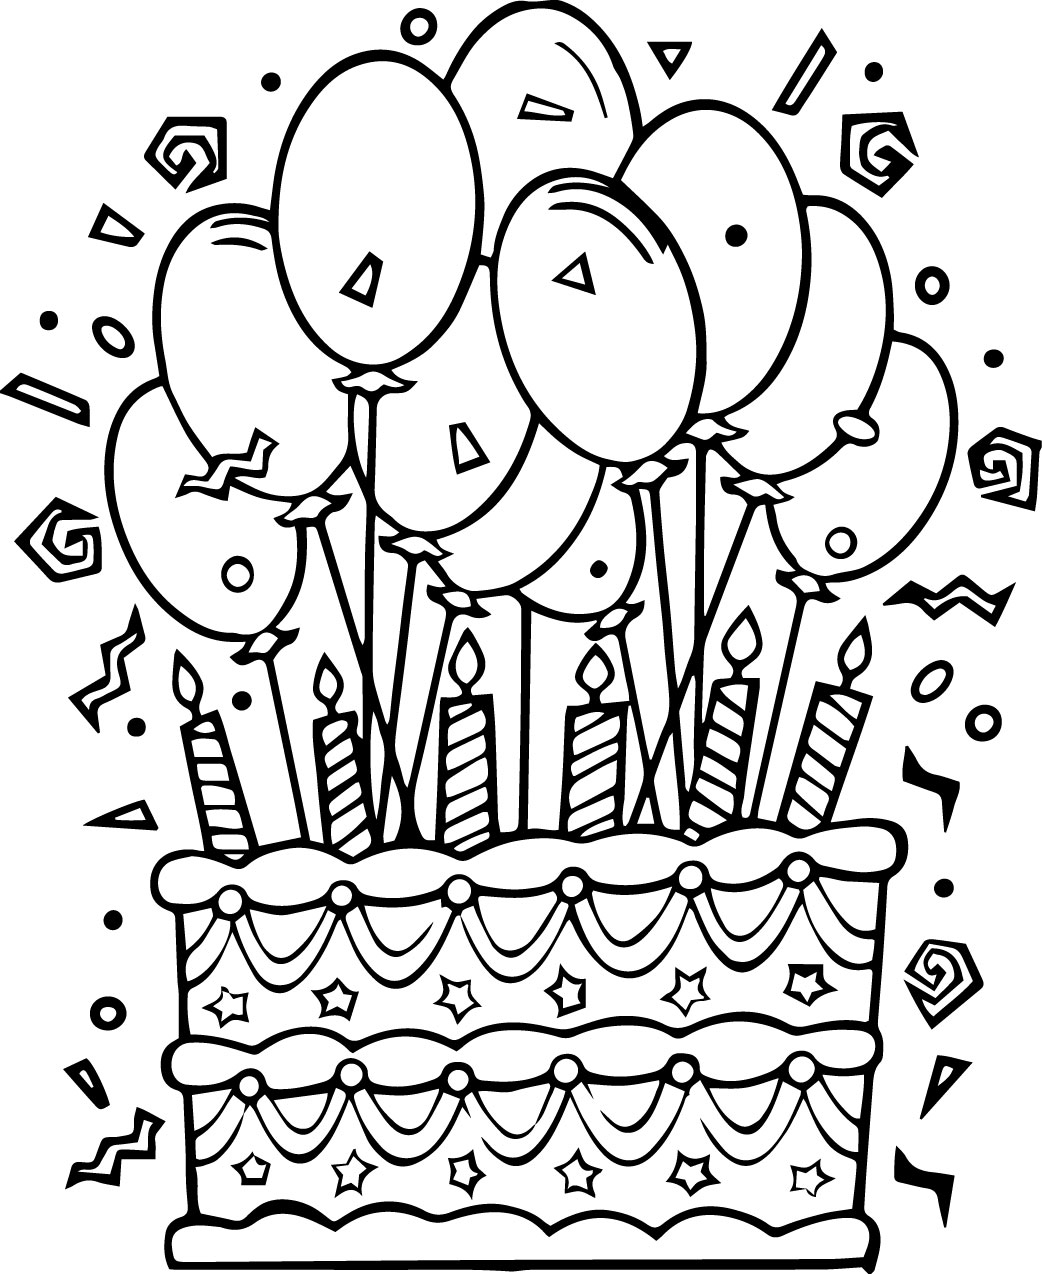 coloring pages cake free printable birthday cake coloring pages for kids coloring pages cake 1 1